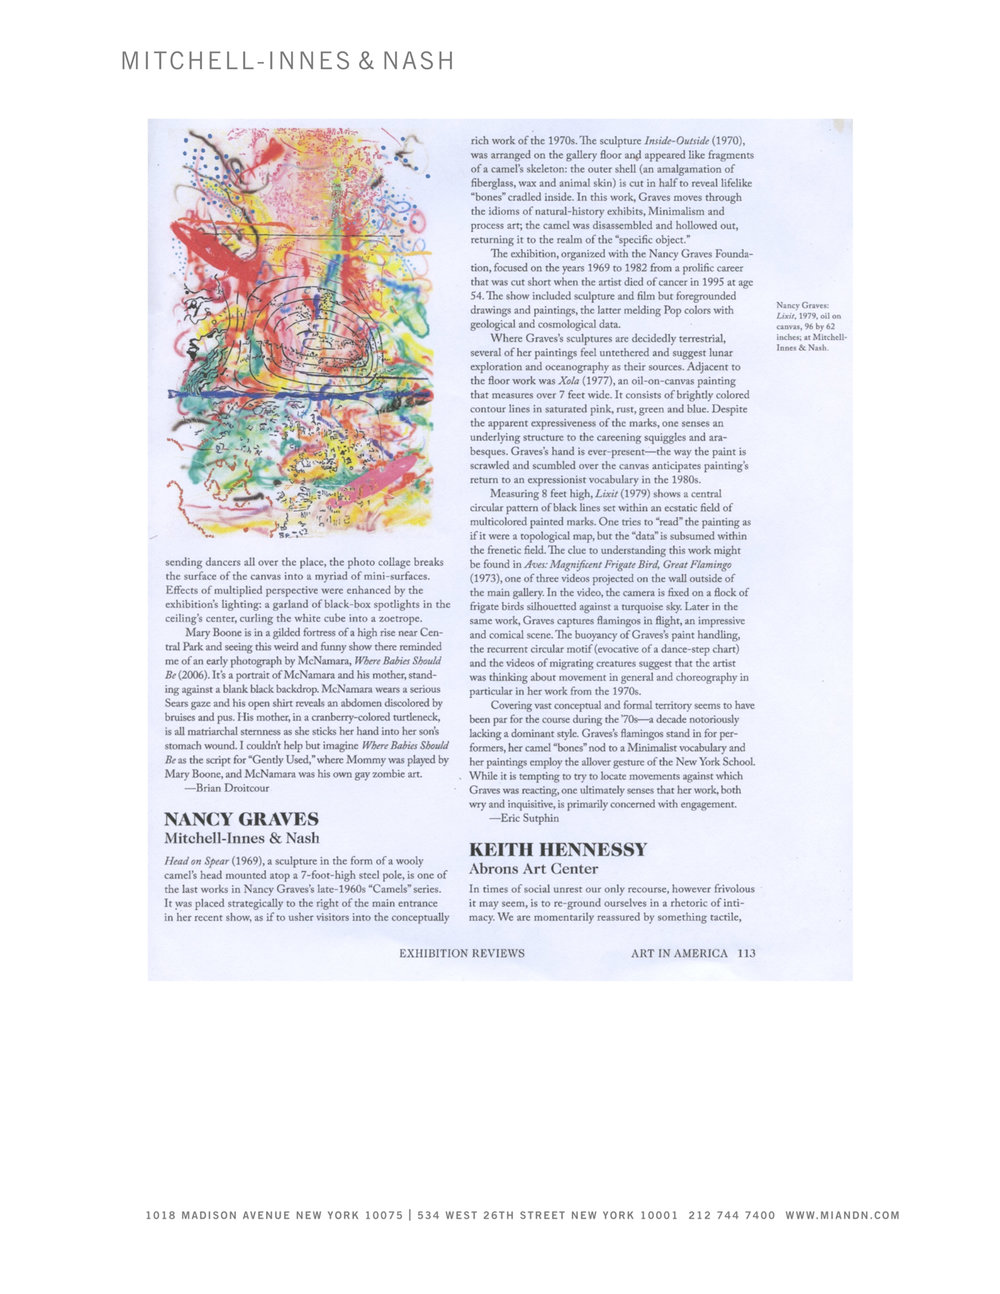 Nancy Graves , Exhibition review by Eric Sutphin, Art In America, April, 2015